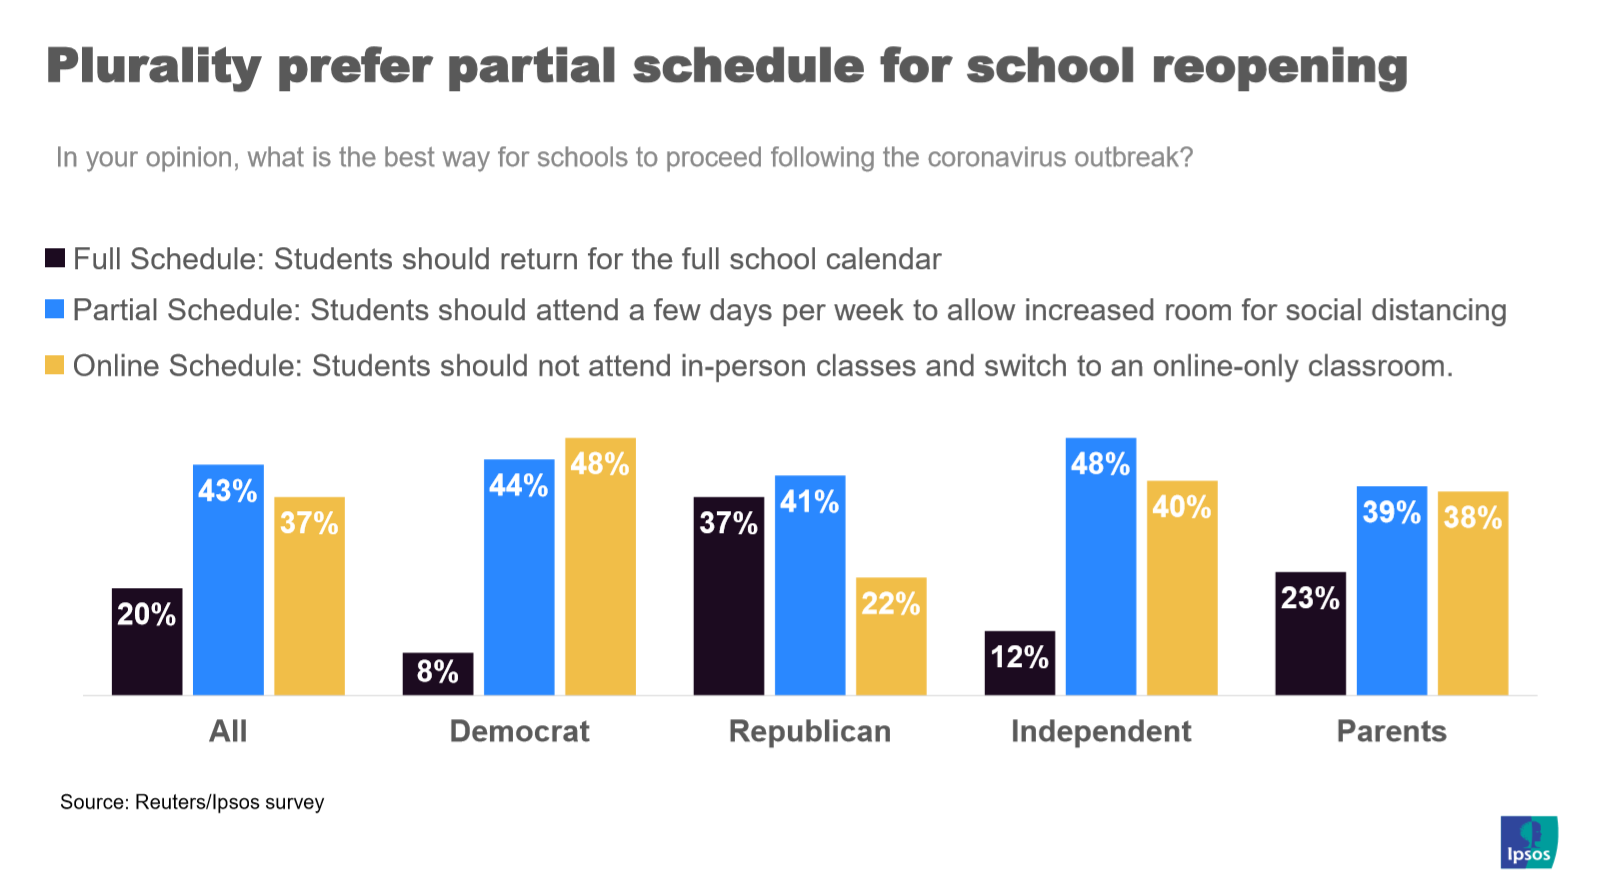 Parents prefer partial reopening